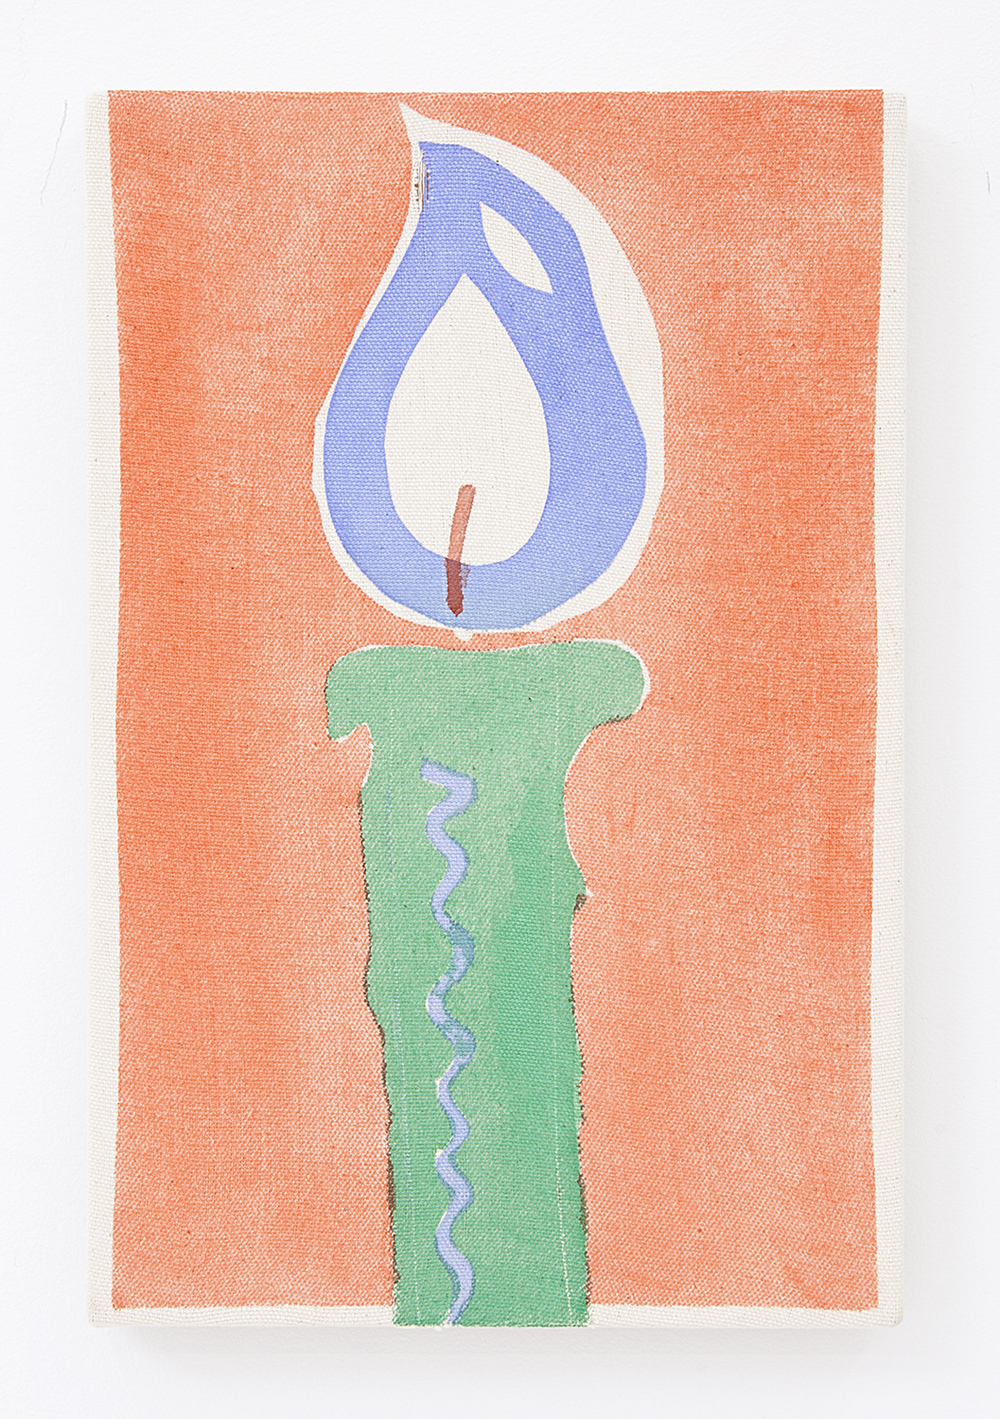 Green Candle , 2016 Pigment on raw canvas 12 x 8 inches